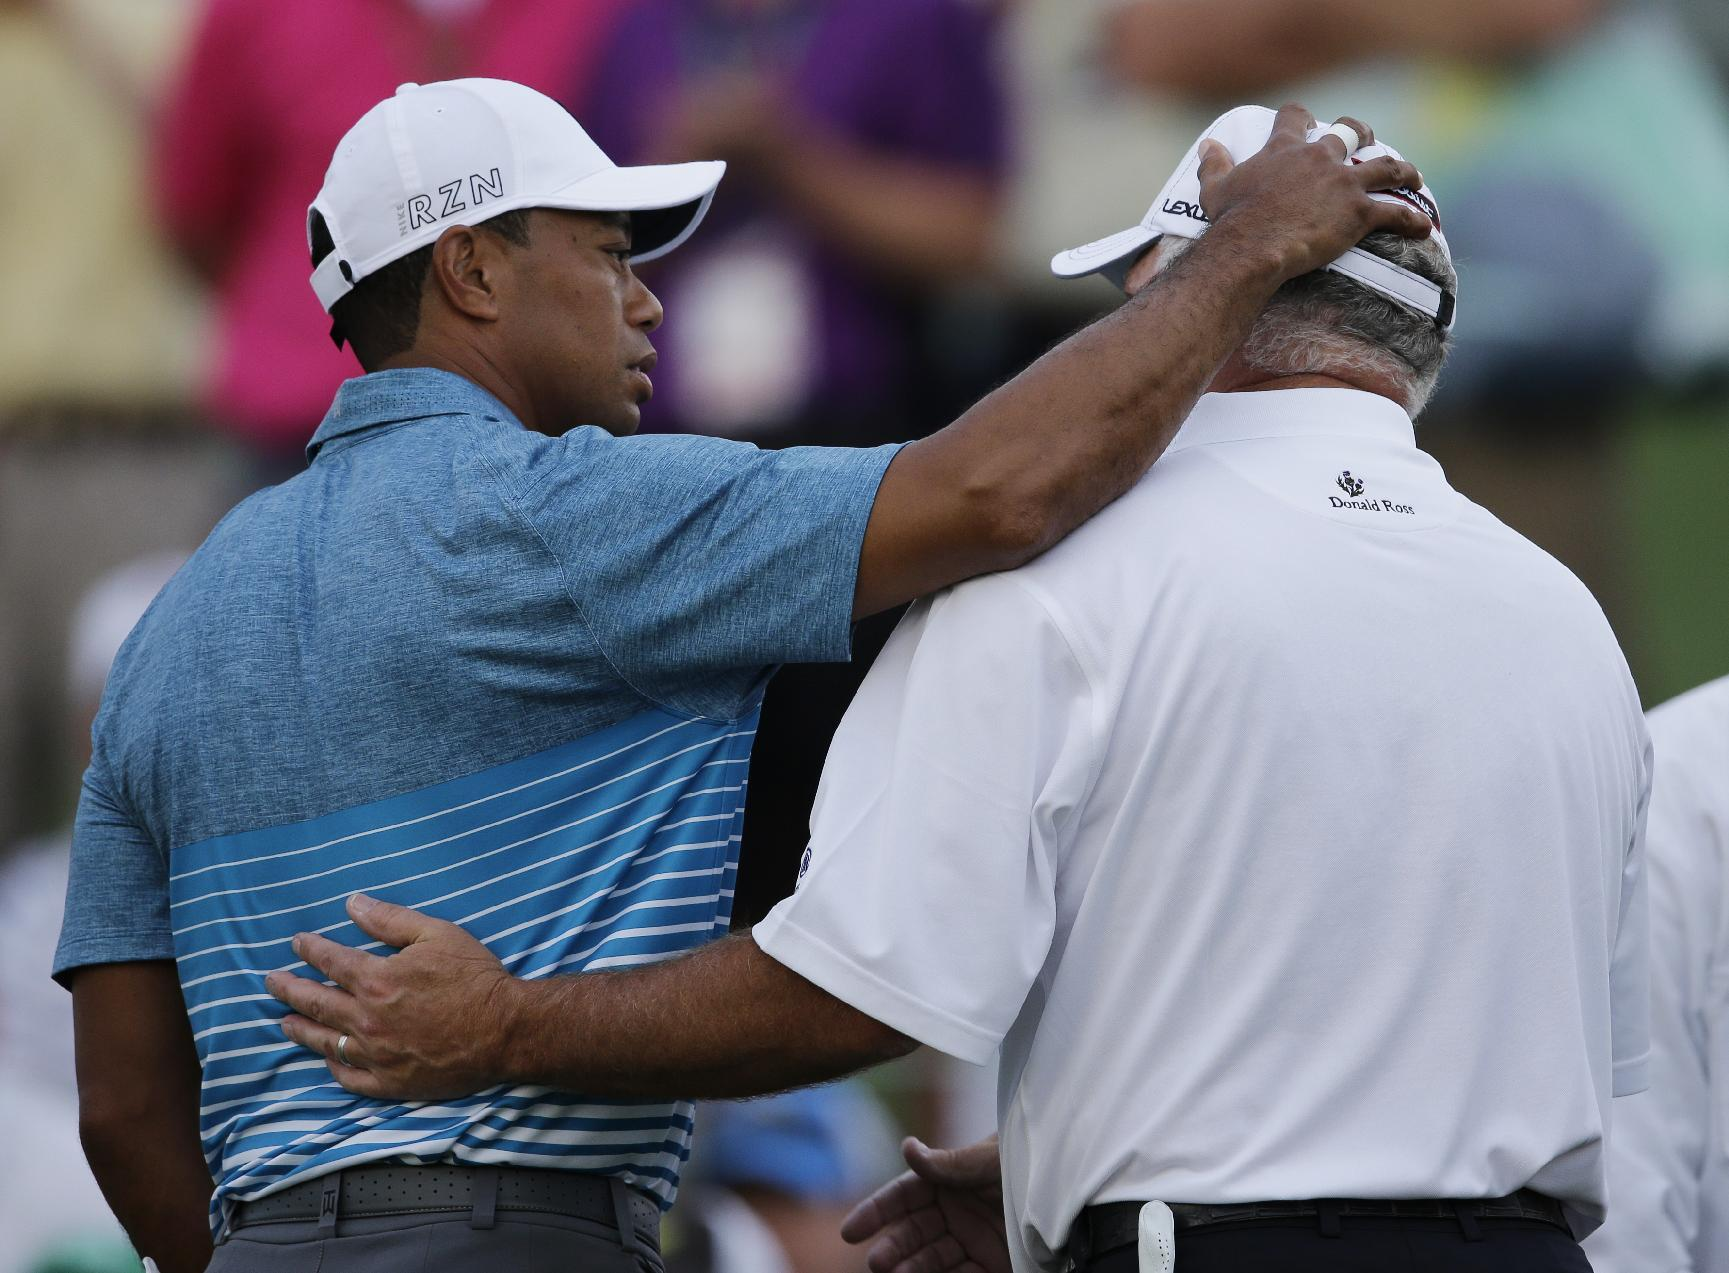 Tiger Woods, left, hugs, Mark O'Meara after their practice round for the Masters golf tournament Monday, April 6, 2015, in Augusta, Ga. (AP Photo/Matt Slocum)